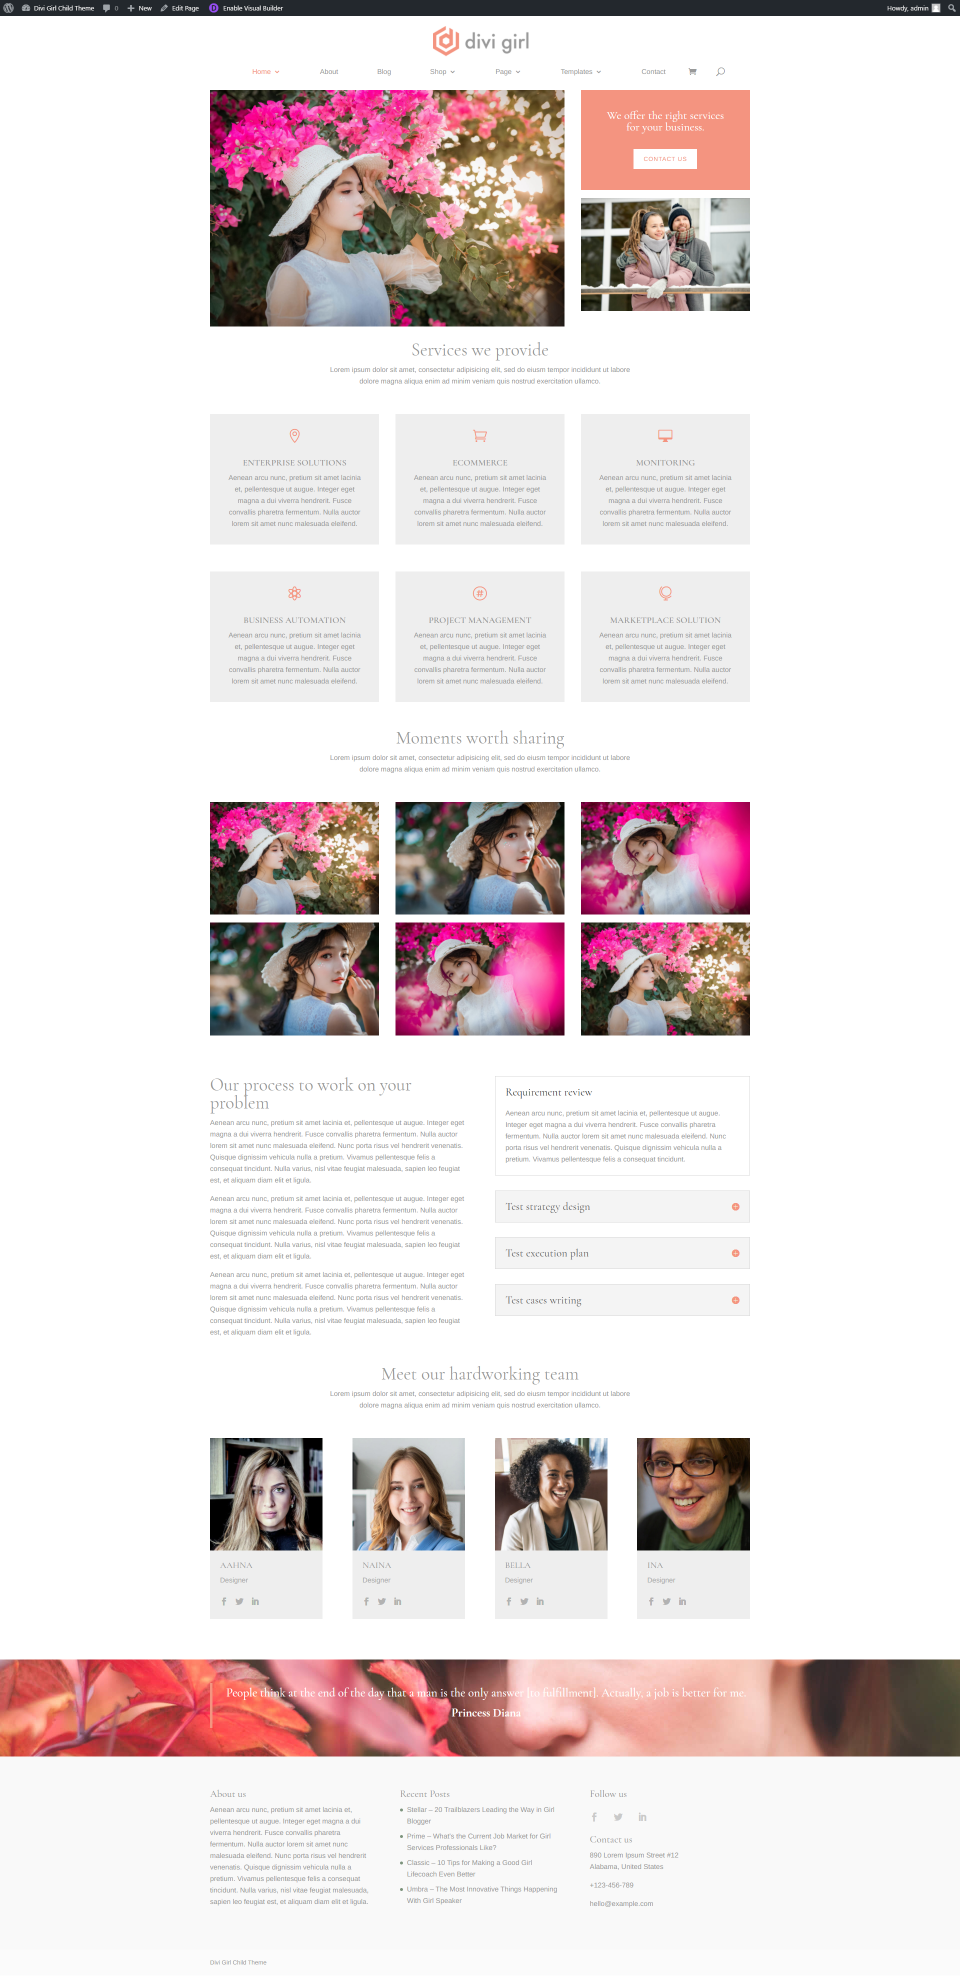 divi-girl-child-theme-overview-11 Divi Girl Child Theme Overview